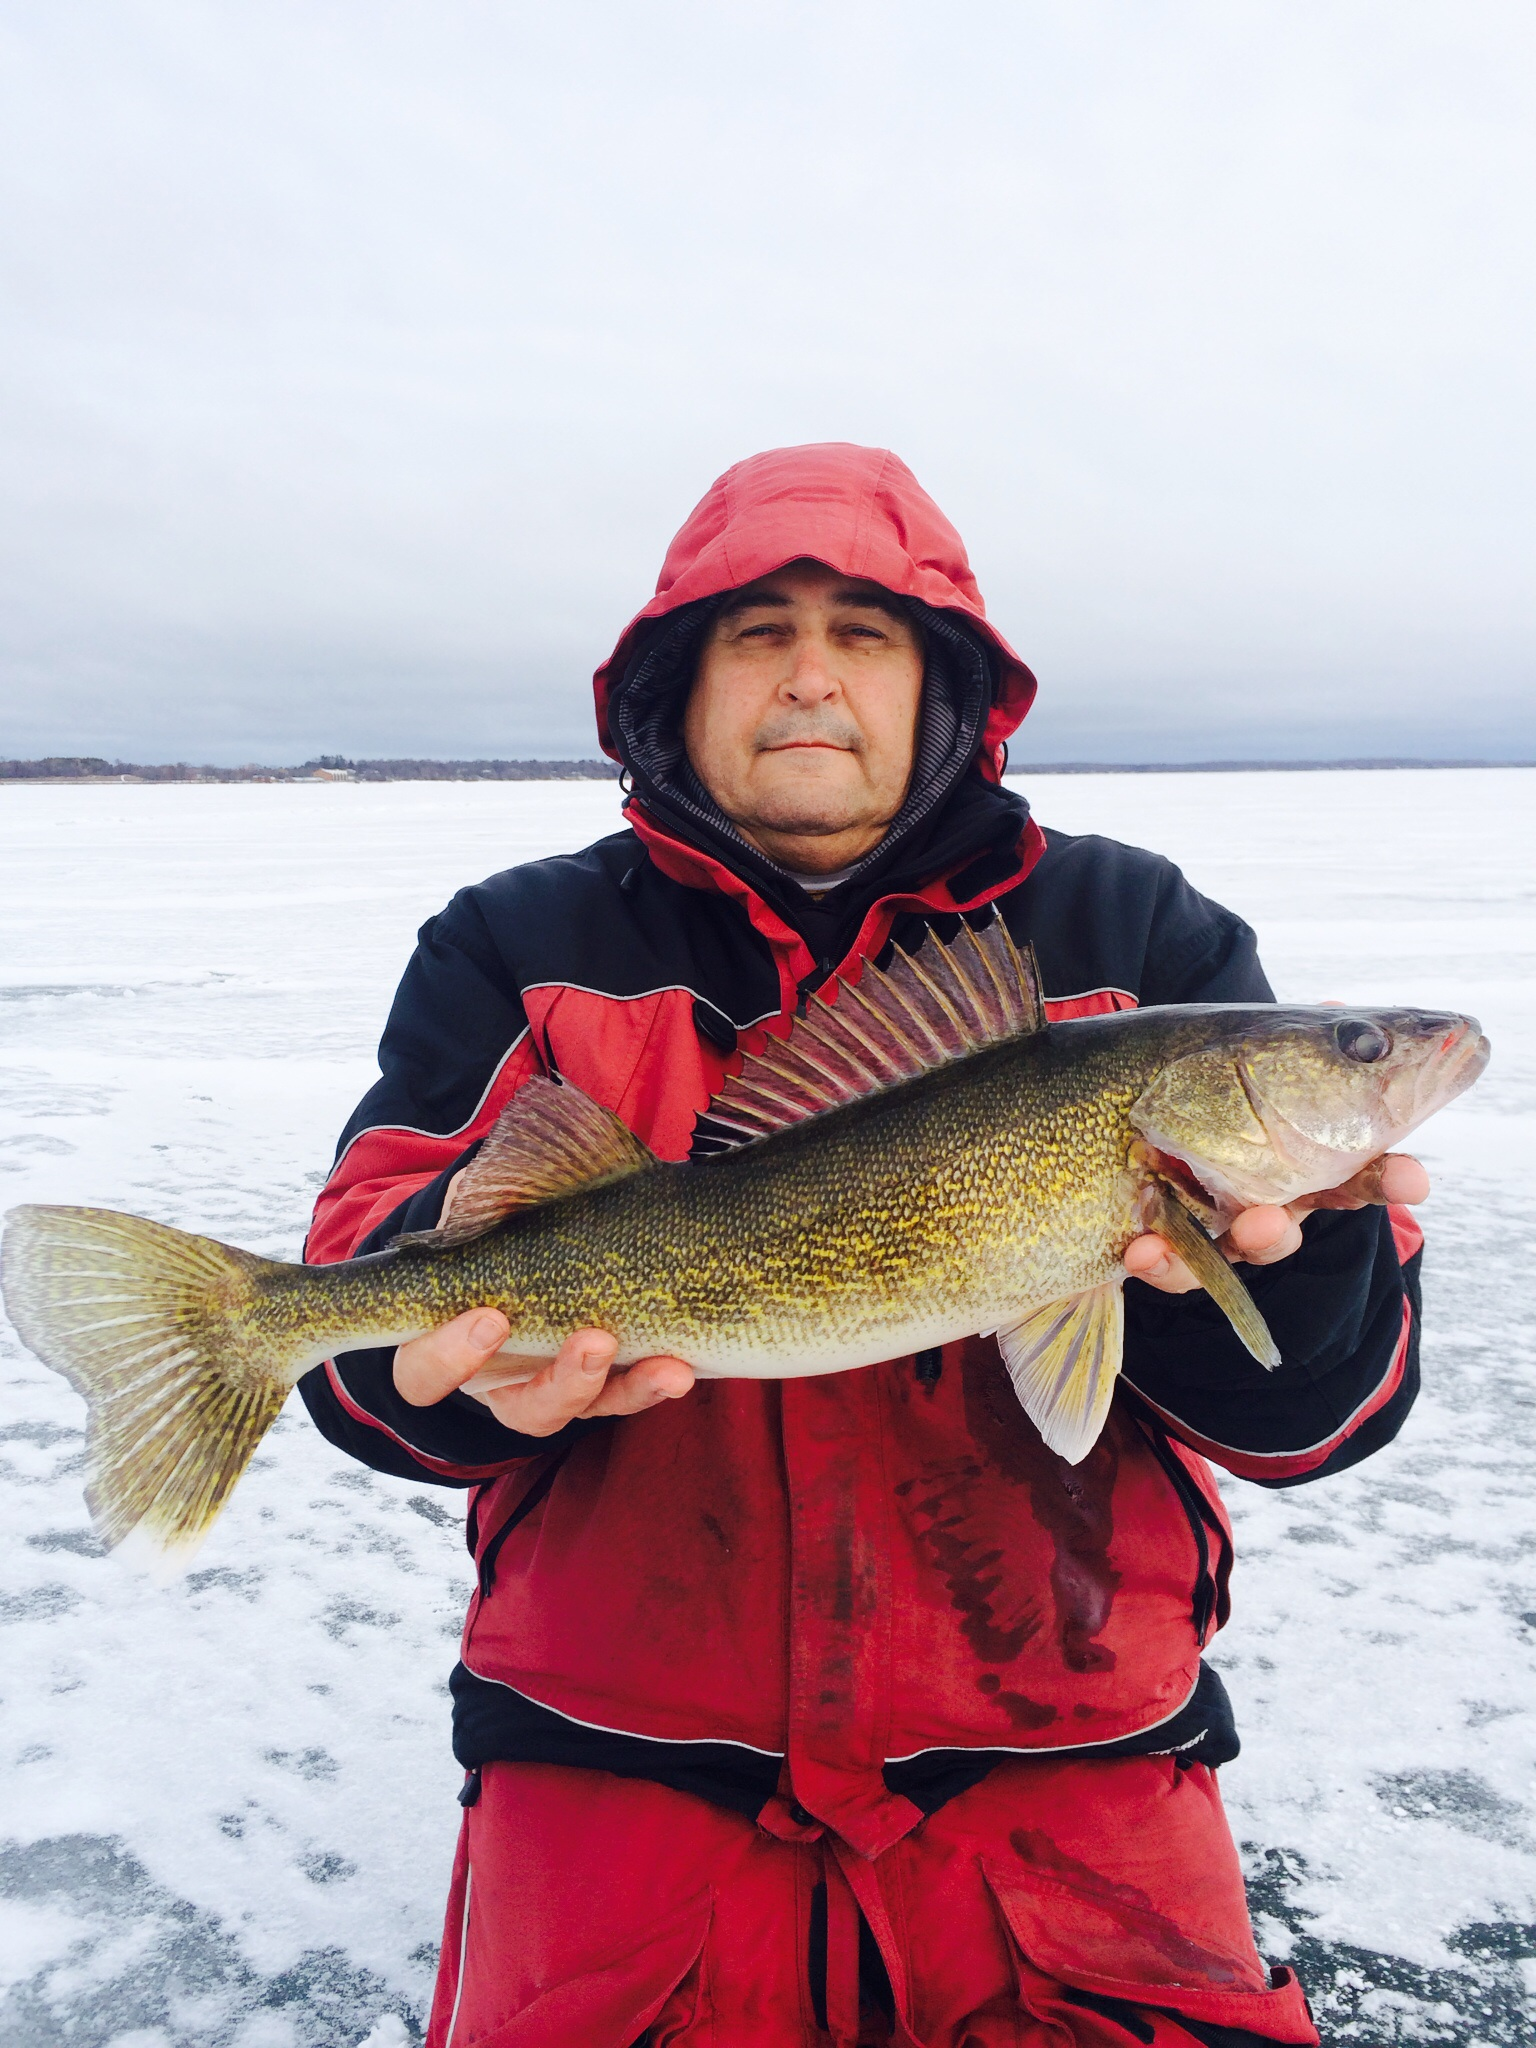 Mille lacs jumbo perch hot girls wallpaper for Ice fishing tournaments mn 2017